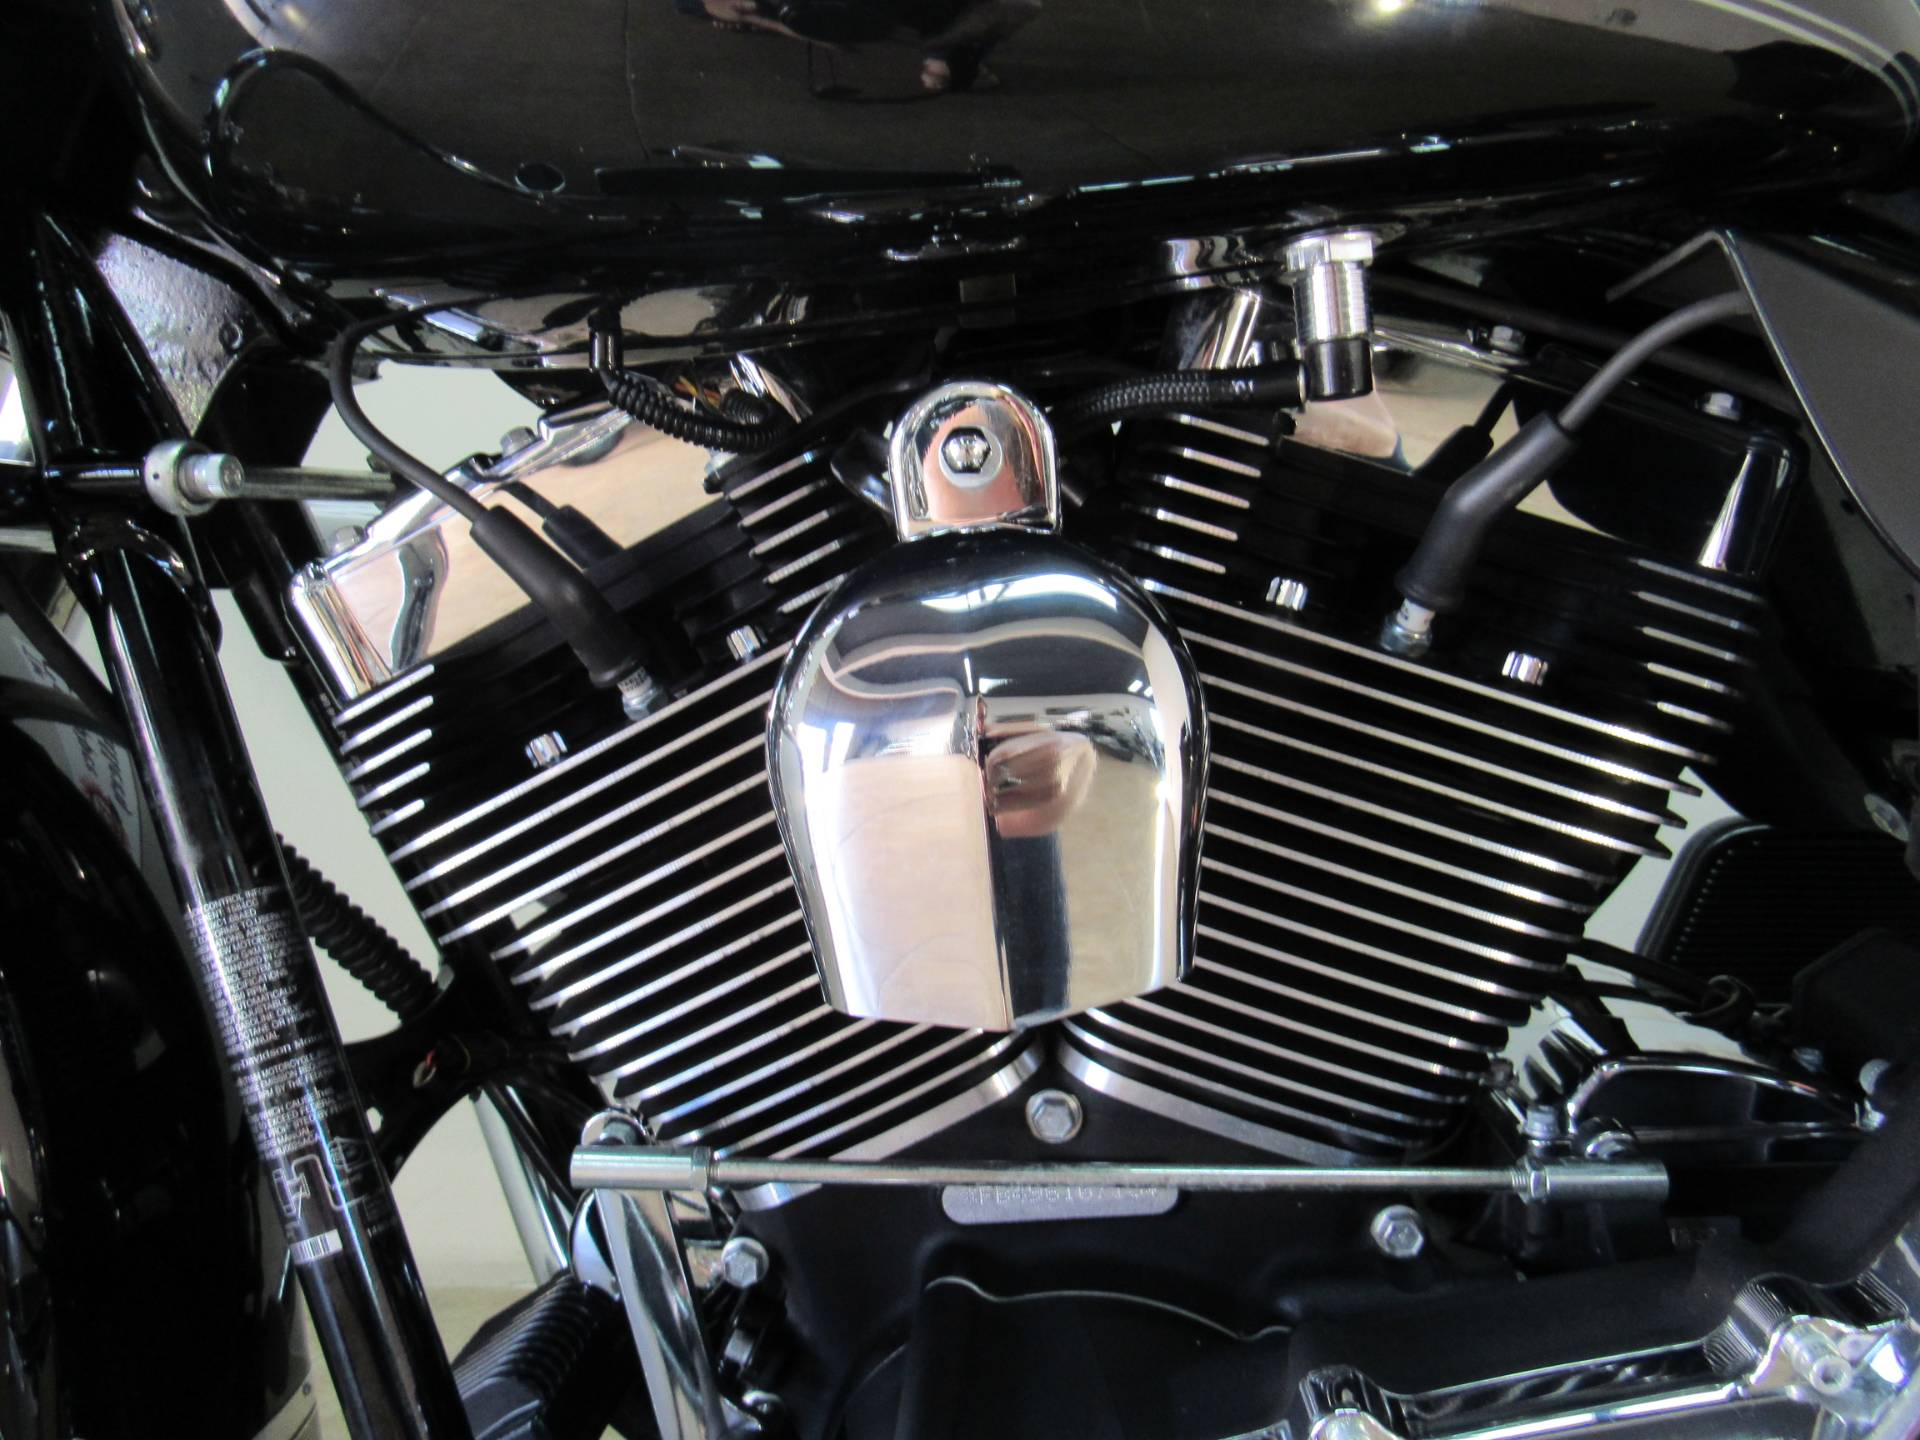 2009 Harley-Davidson Road King® in Temecula, California - Photo 17